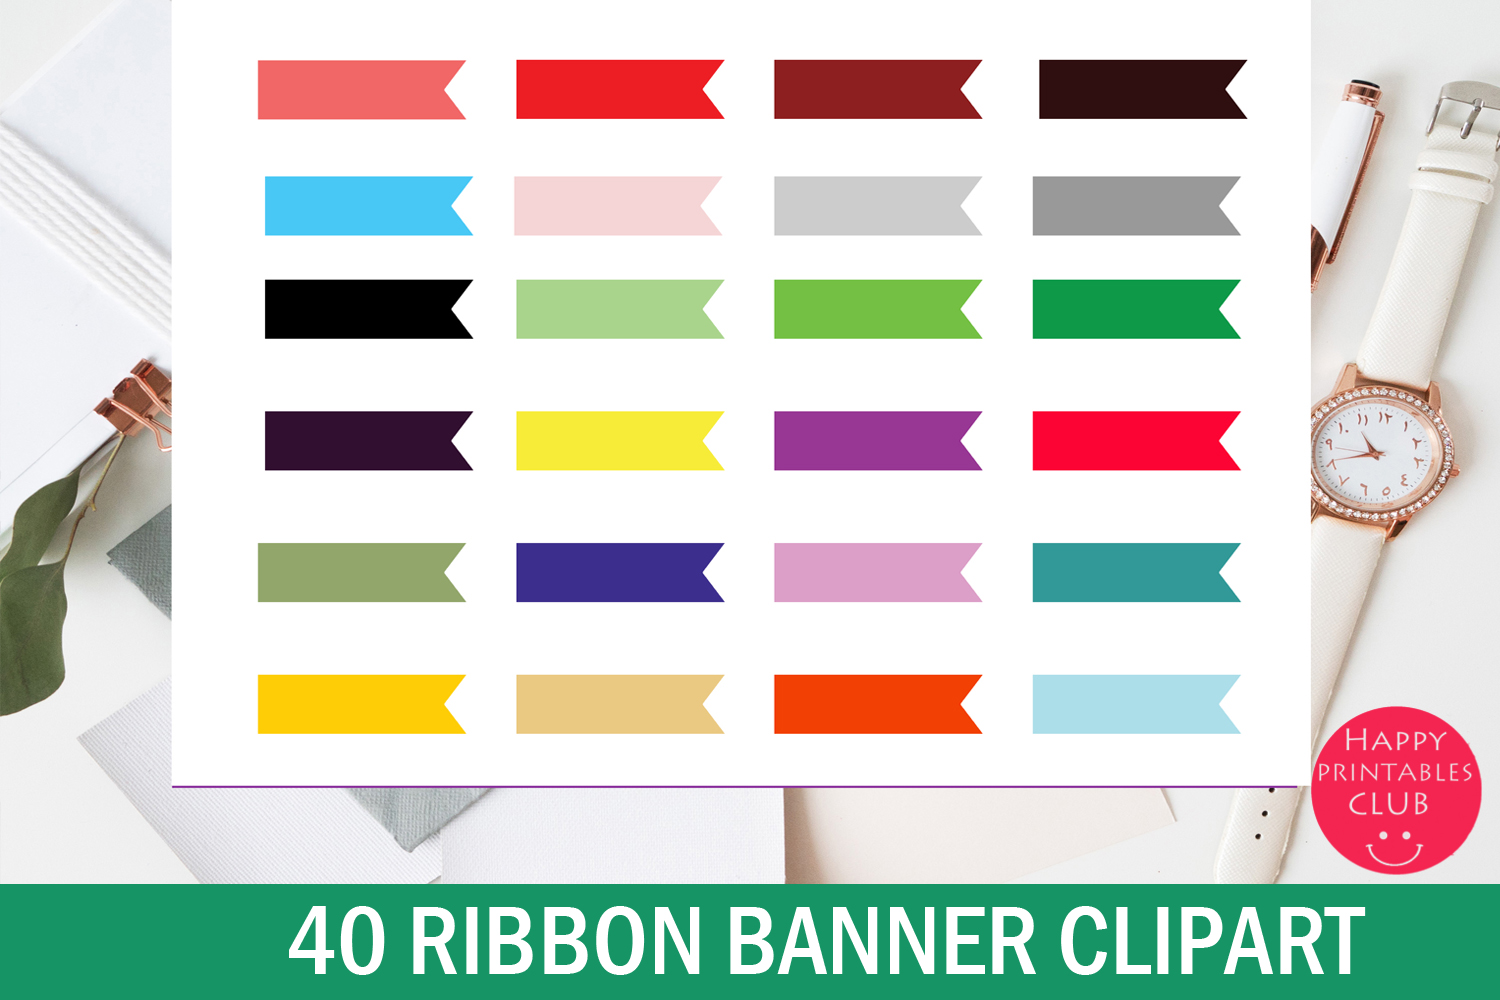 Download Free Ribbon Banner Clipart Cute Ribbons Graphic By Happy Printables for Cricut Explore, Silhouette and other cutting machines.